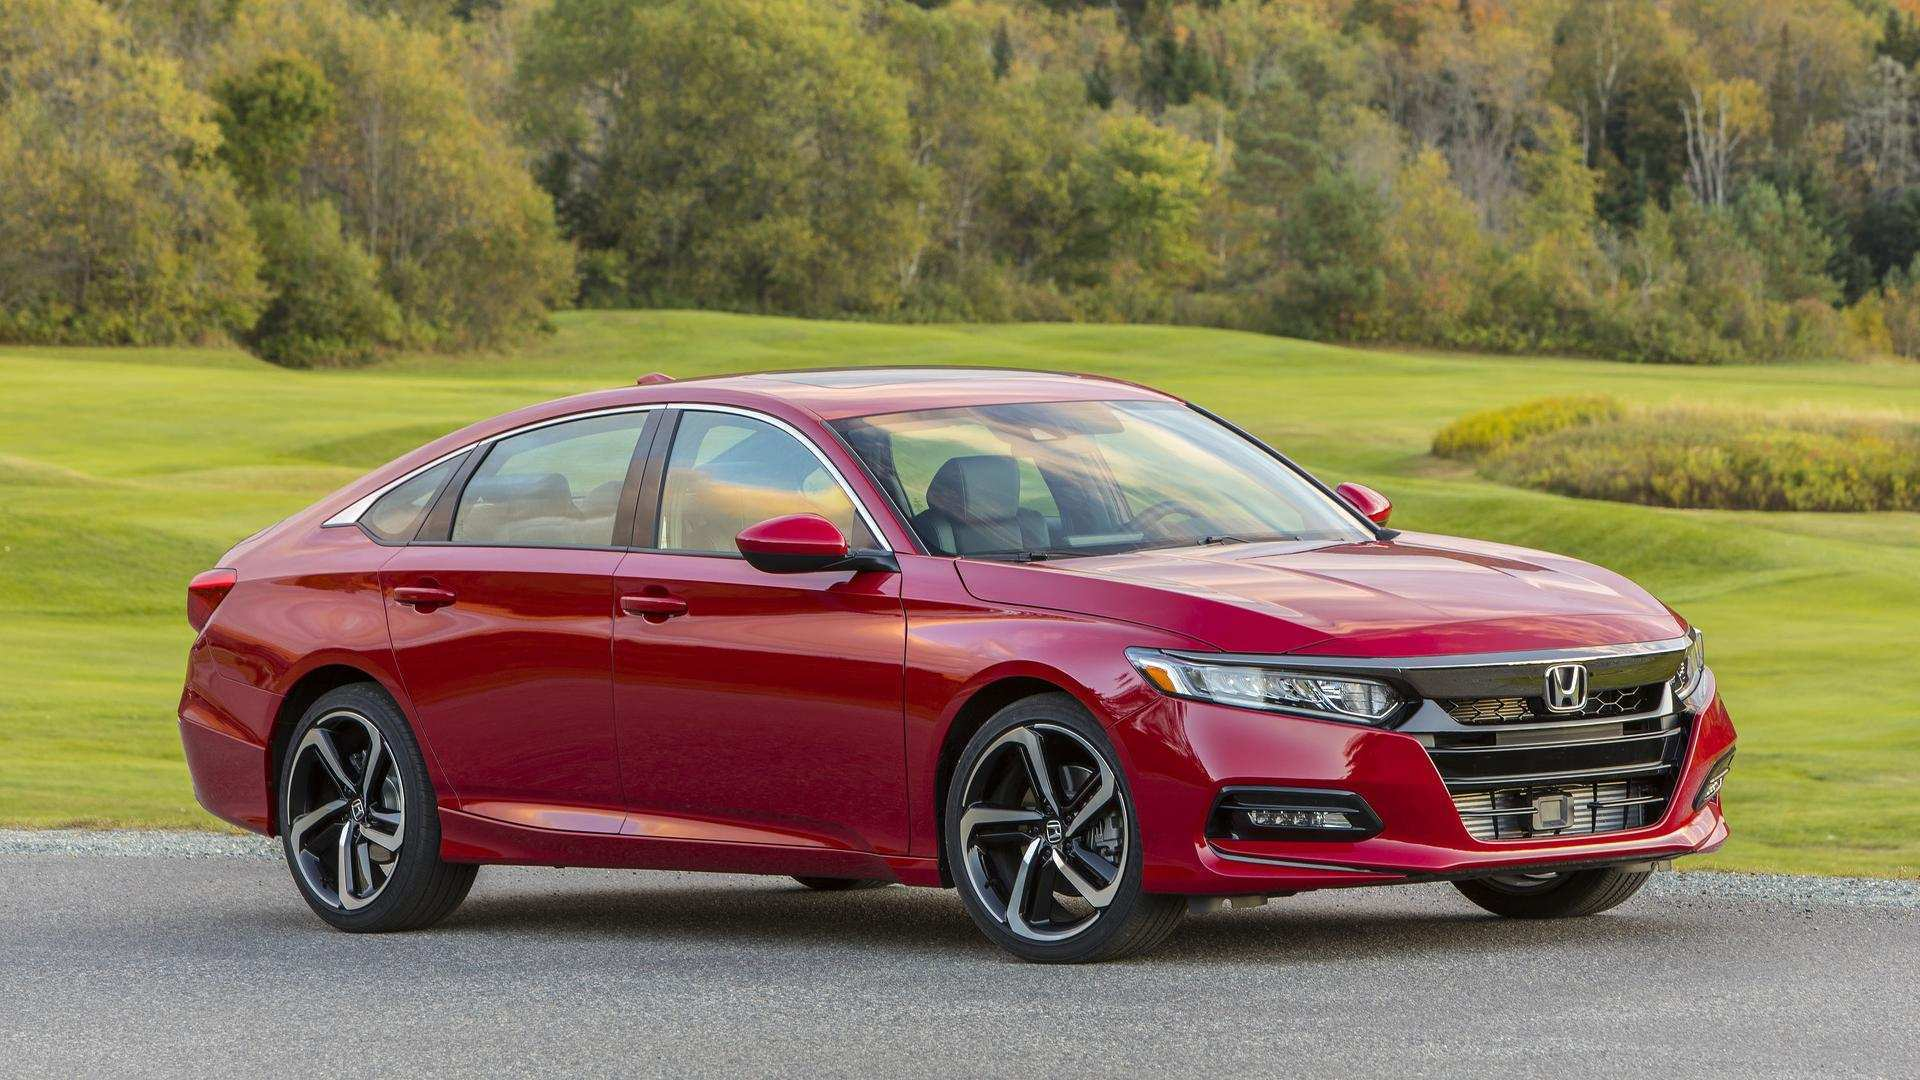 55 All New 2019 Honda Accord Wagon Reviews for 2019 Honda Accord Wagon